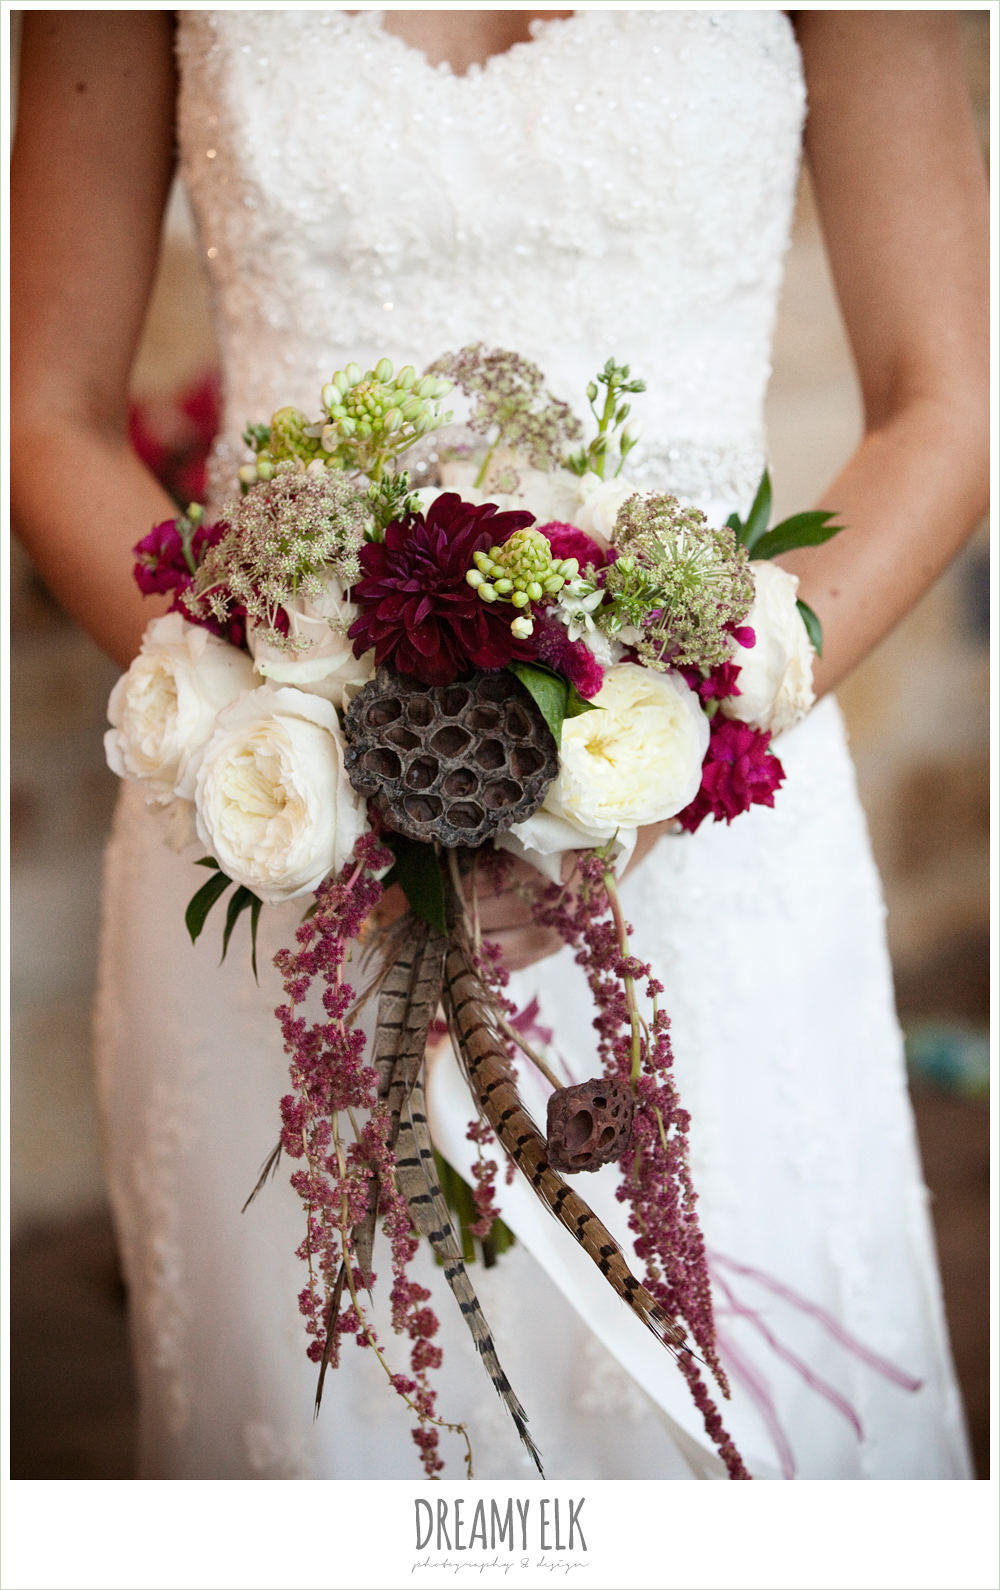 fall wedding bouquet, pheasant feathers, lotus pods, white ranunculus, burgundy dahlia, amaranthus, tricia barksdale, fall wedding, rock lake ranch, dreamy elk photography and design